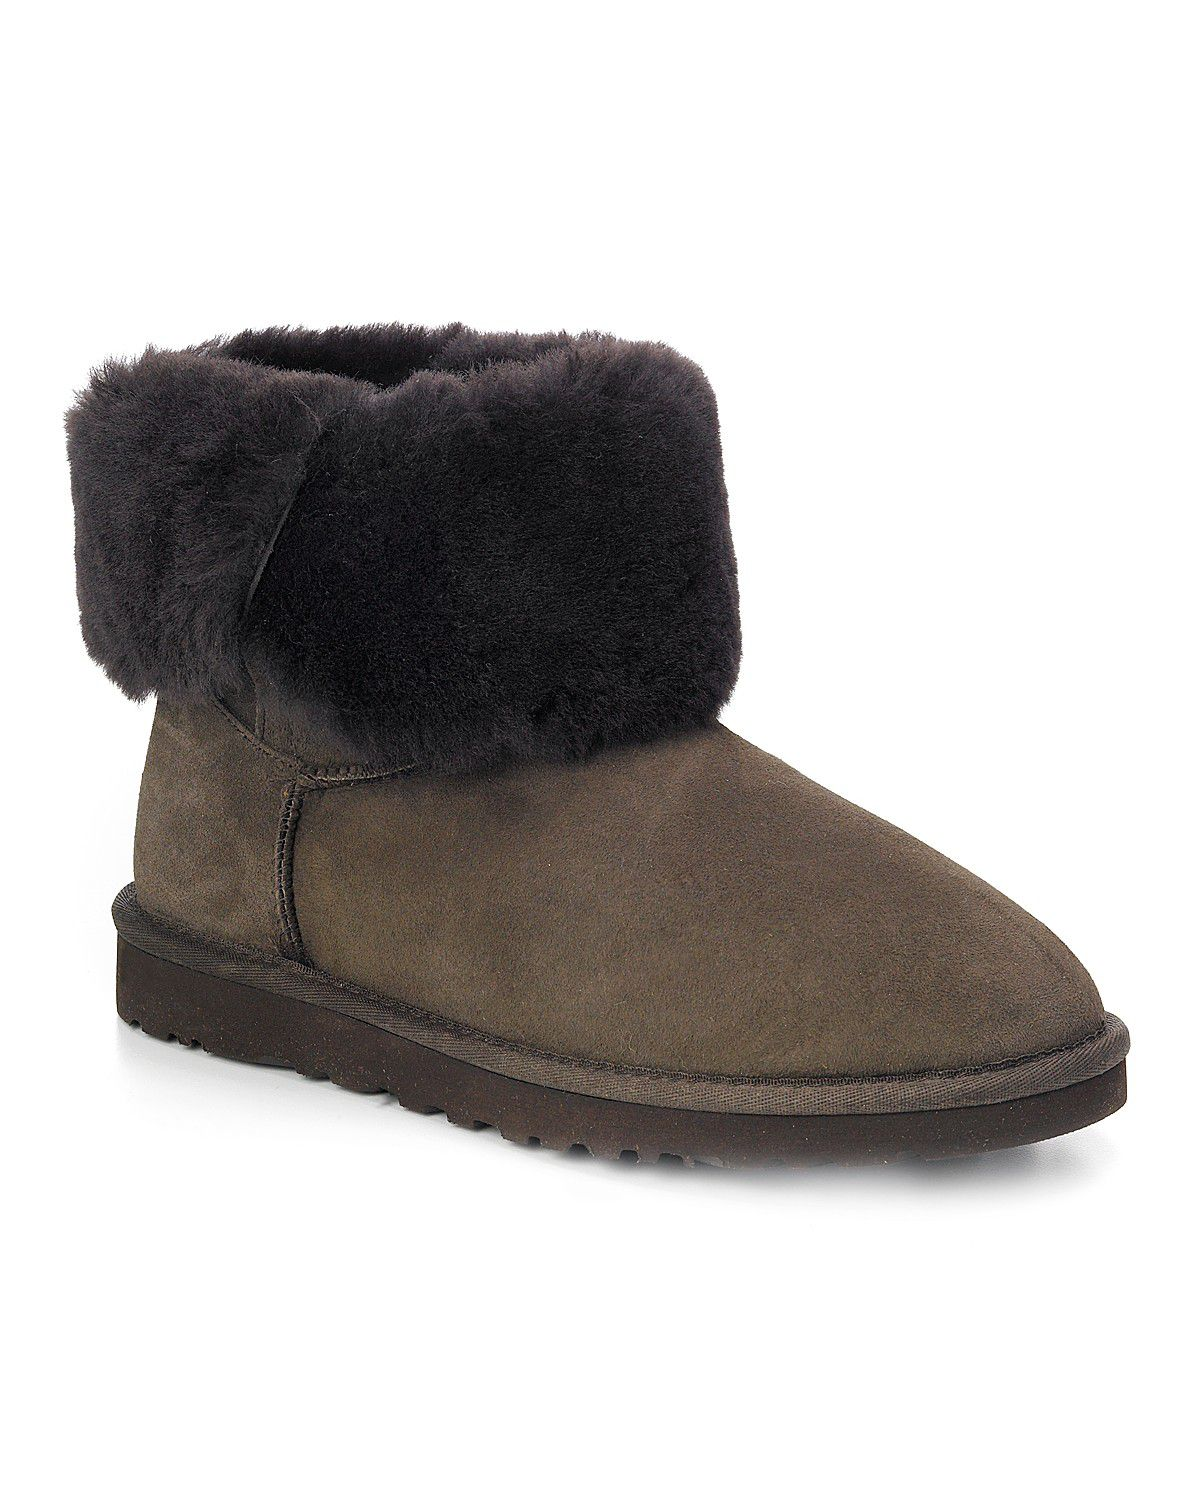 3decabf6fe5 Lyst - Ugg Boots - Bailey Button in Brown